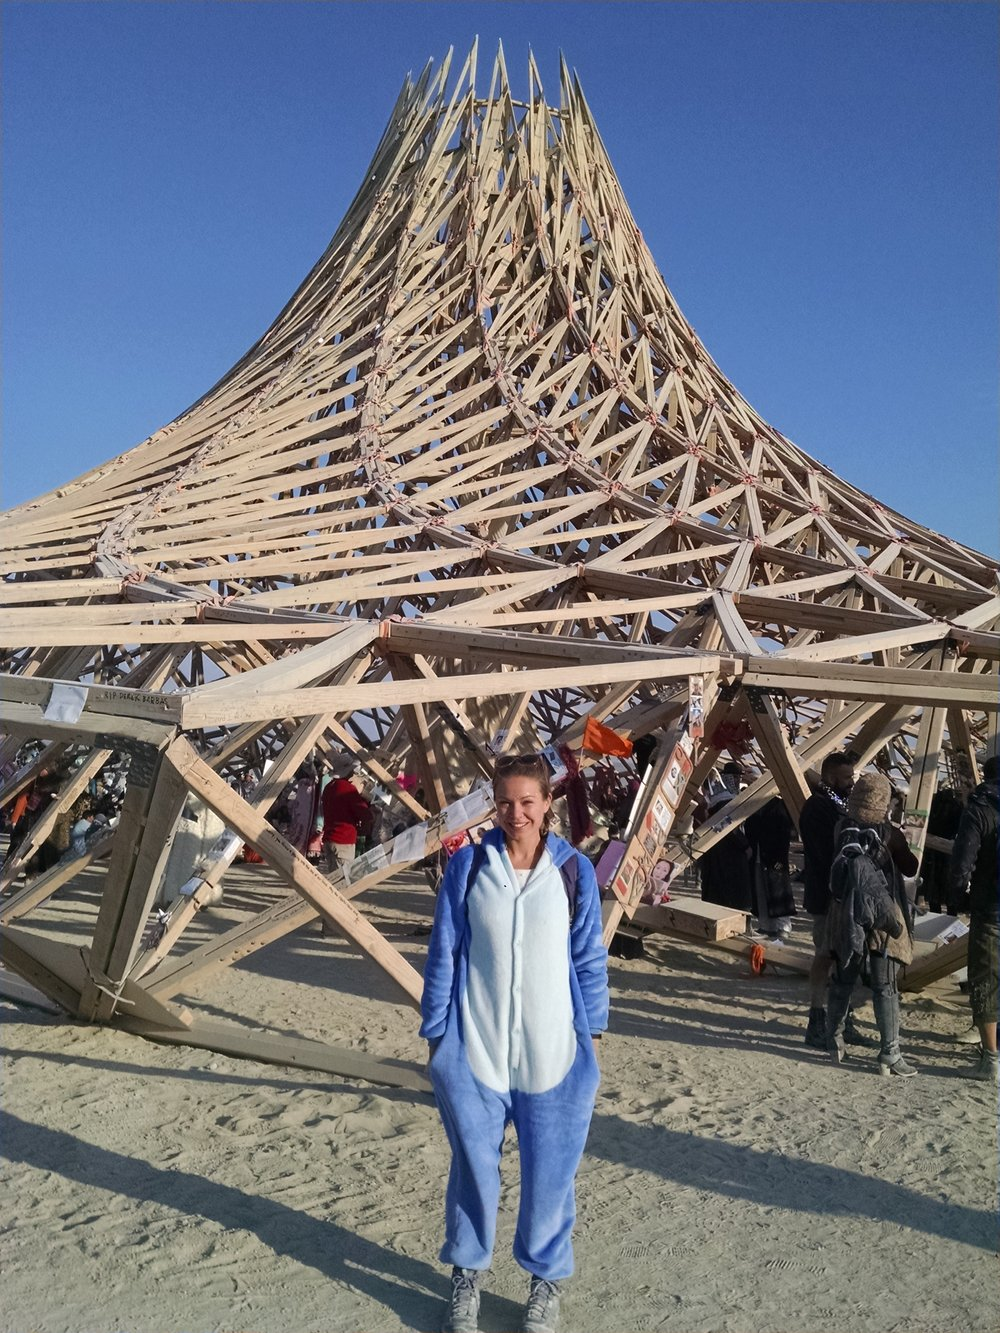 The Temple before the burn at Burning Man, Black Rock City, NV